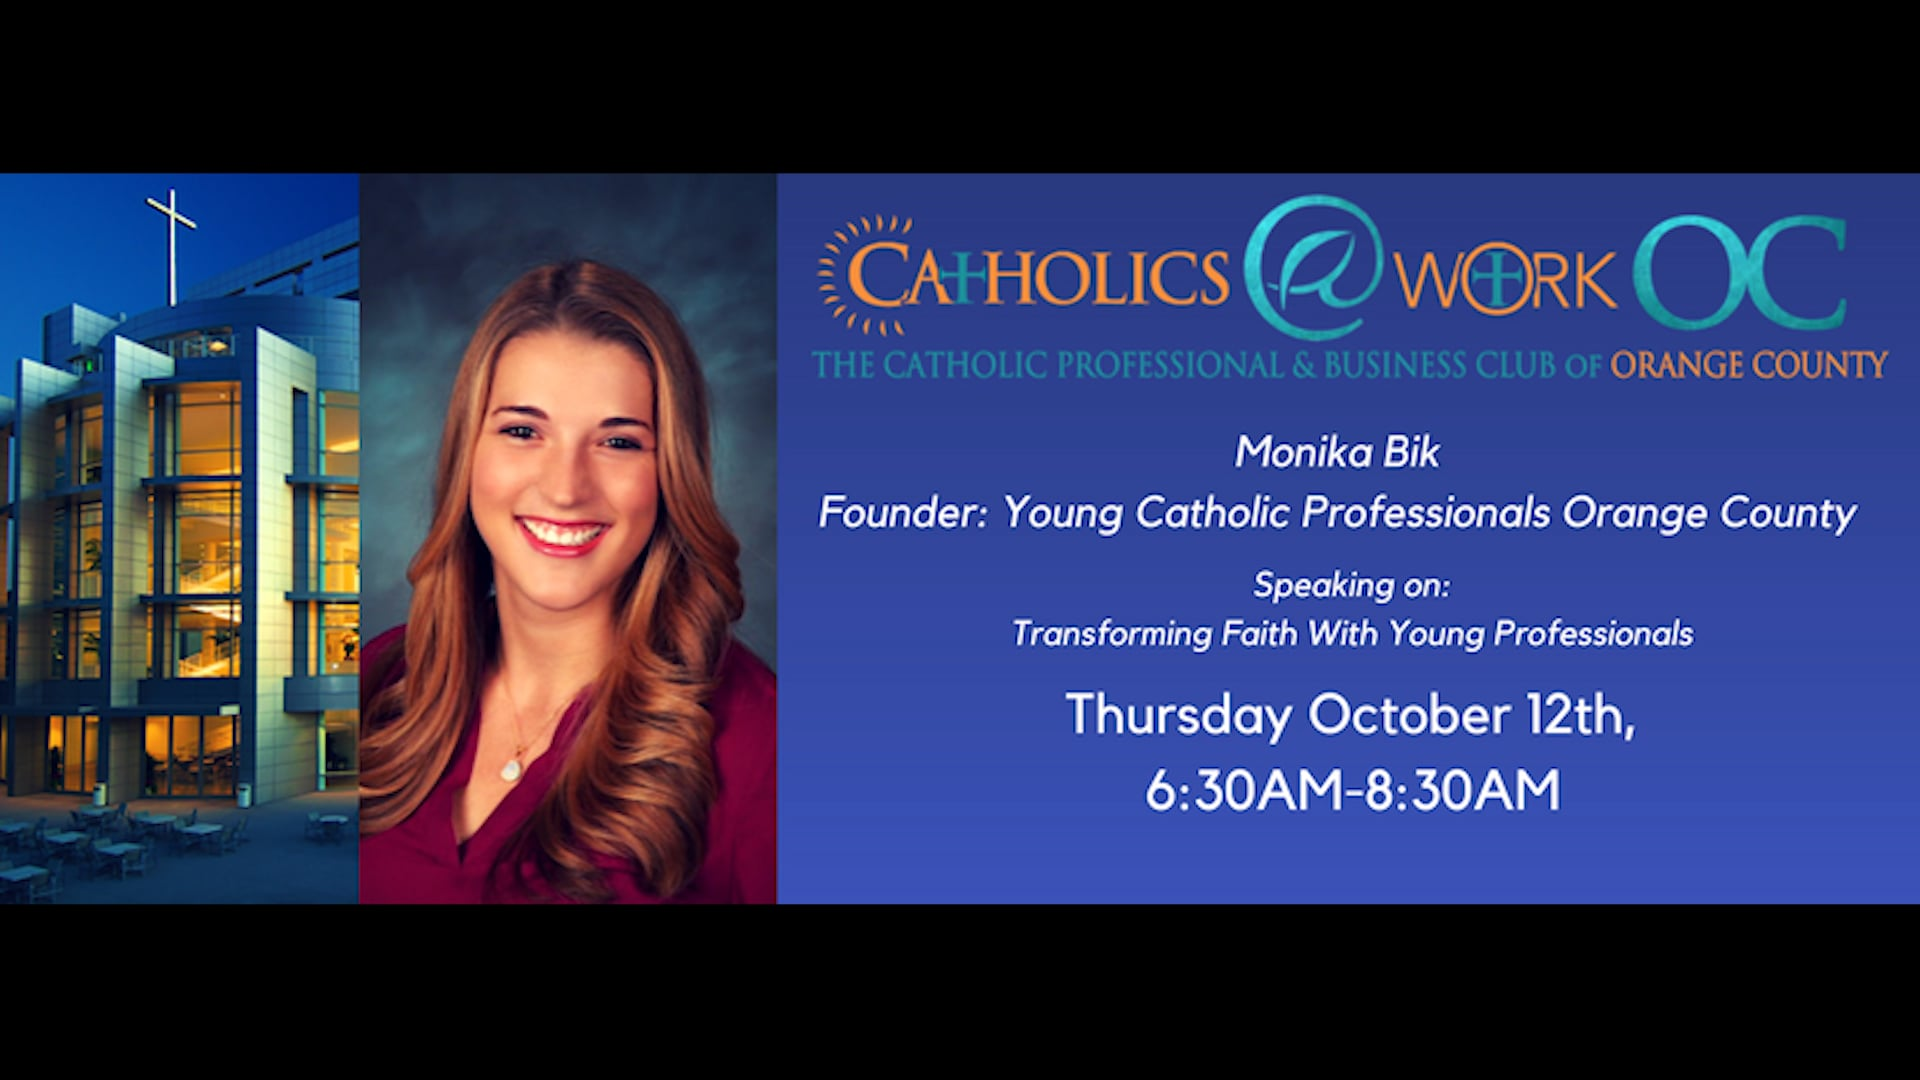 Monica Bik: Transforming Faith with Young Professionals